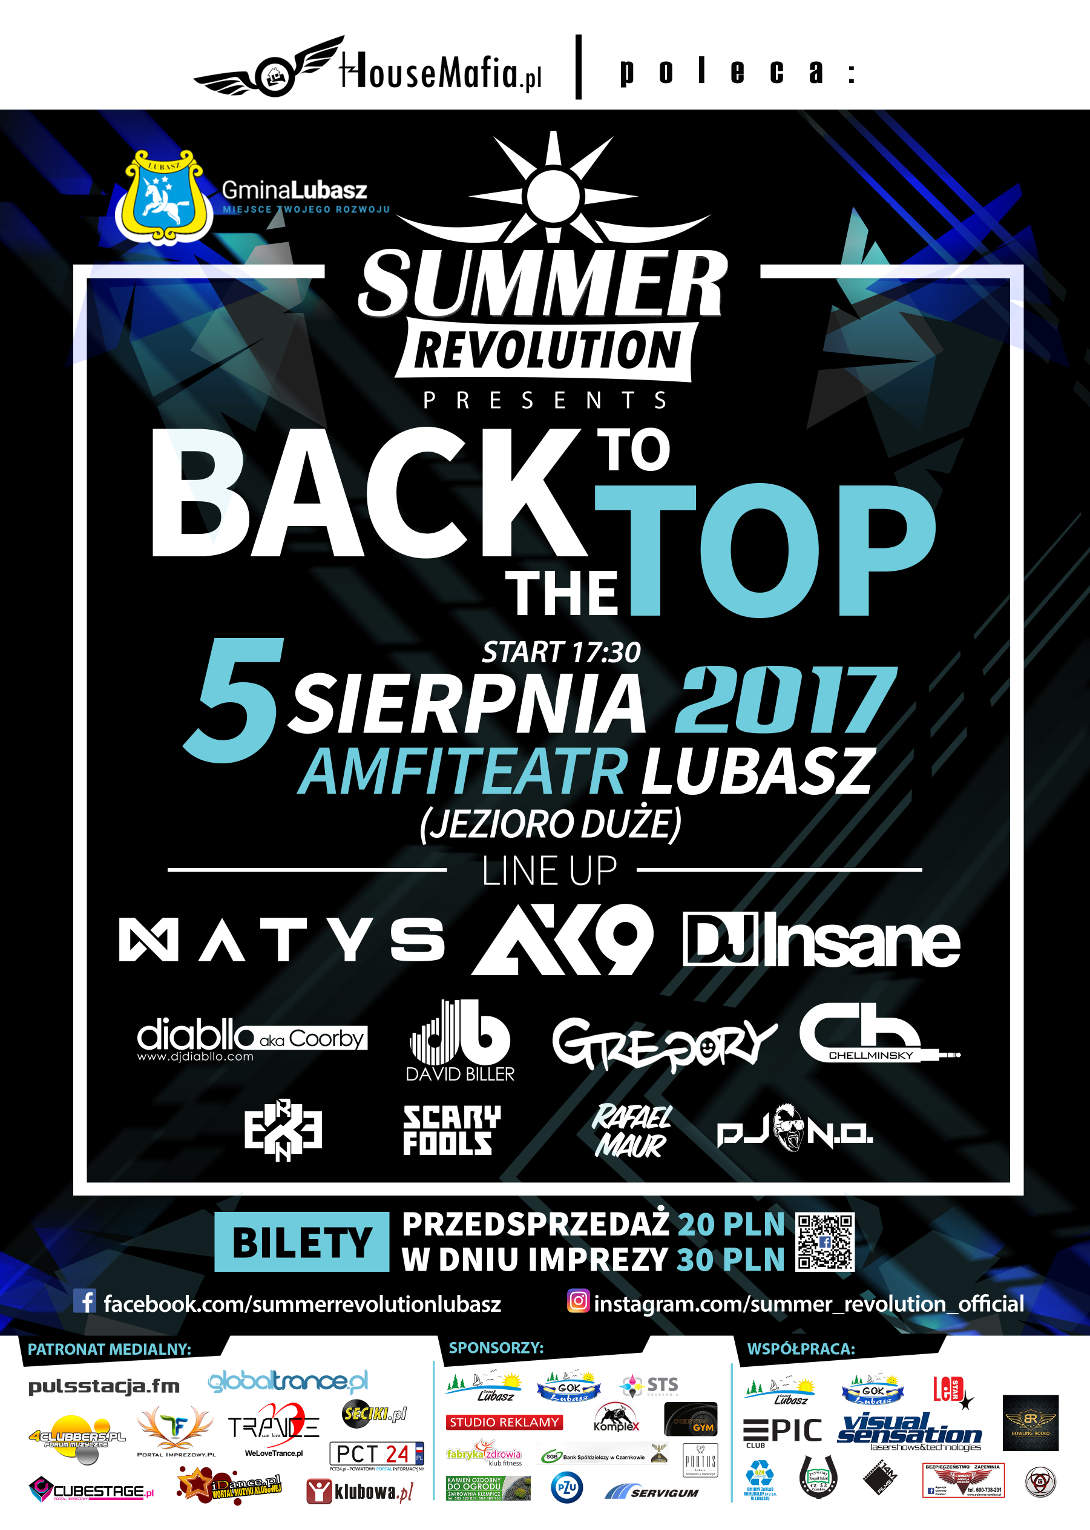 summer revolution back to the top 2017 lubasz